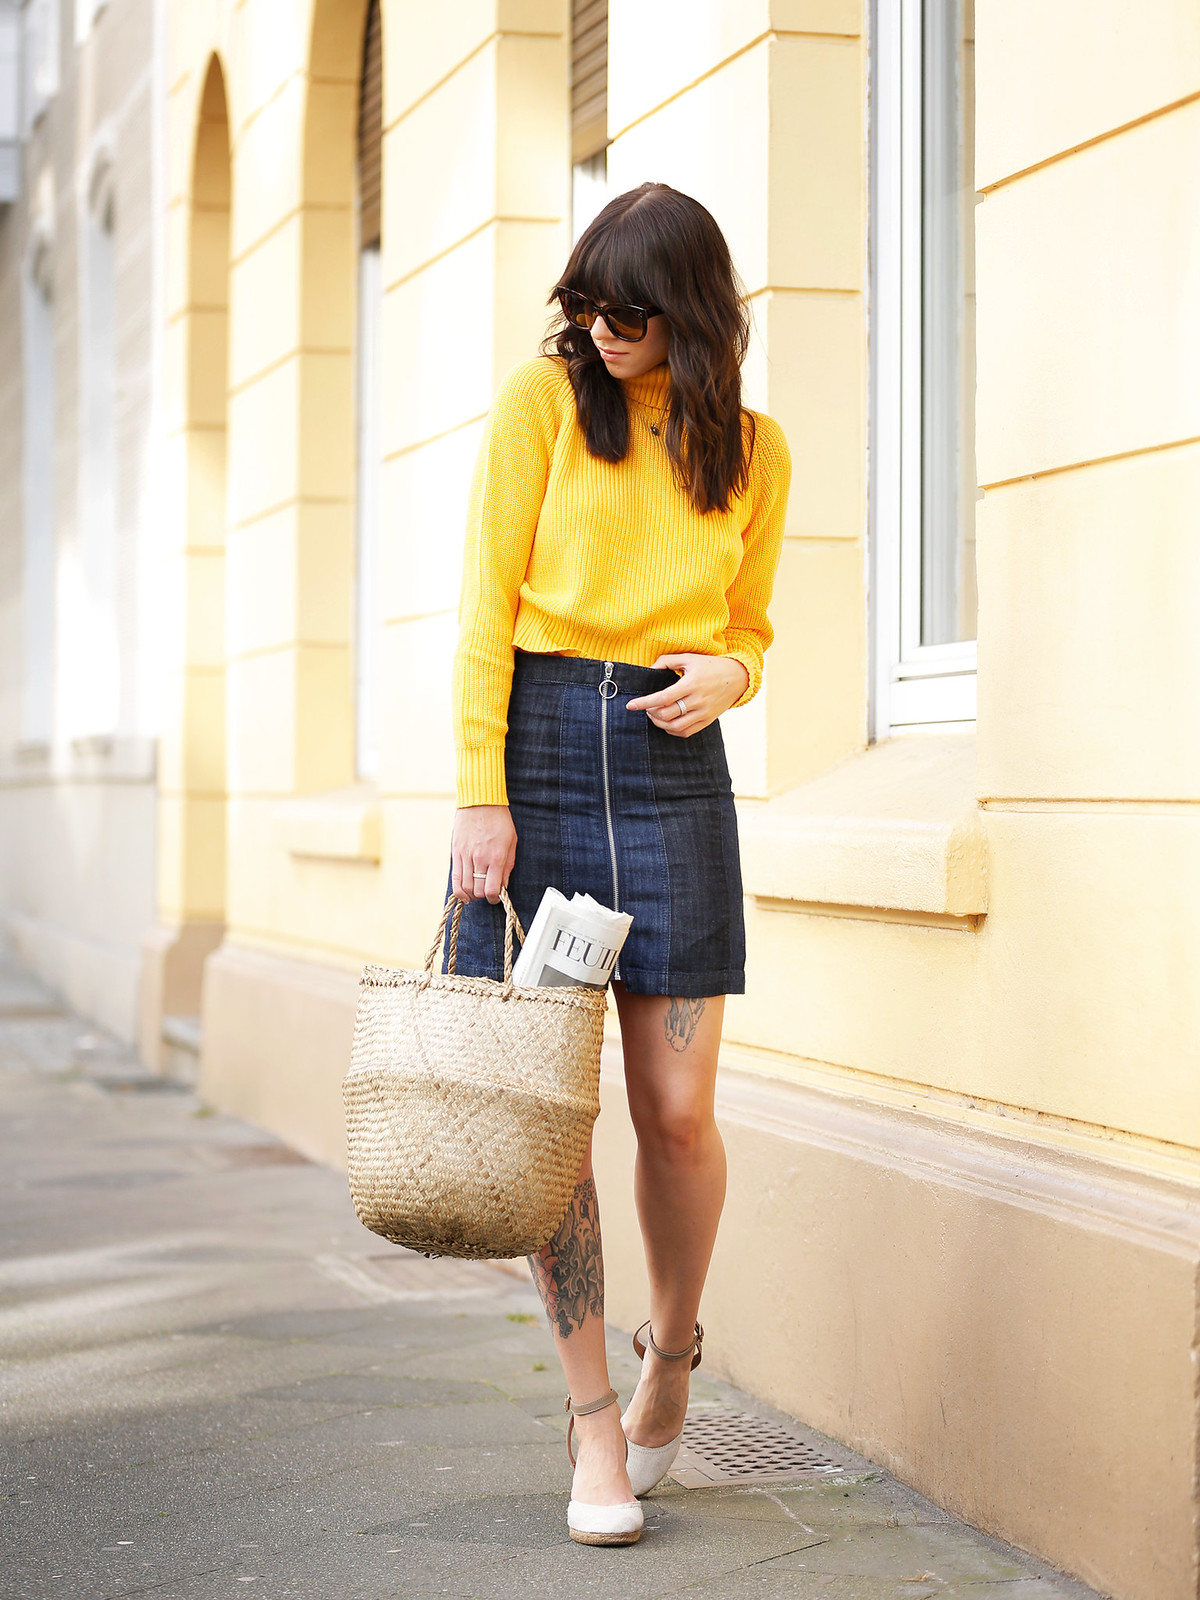 ootd outfit yellow knit turtleneck mini skirt basket jane birkin francoise hardy inspired french icons parisienne style bangs brunette céline audrey sunglasses cats & dogs fashion blog ricarda schernus modeblog fashionblogger germany berlin 3